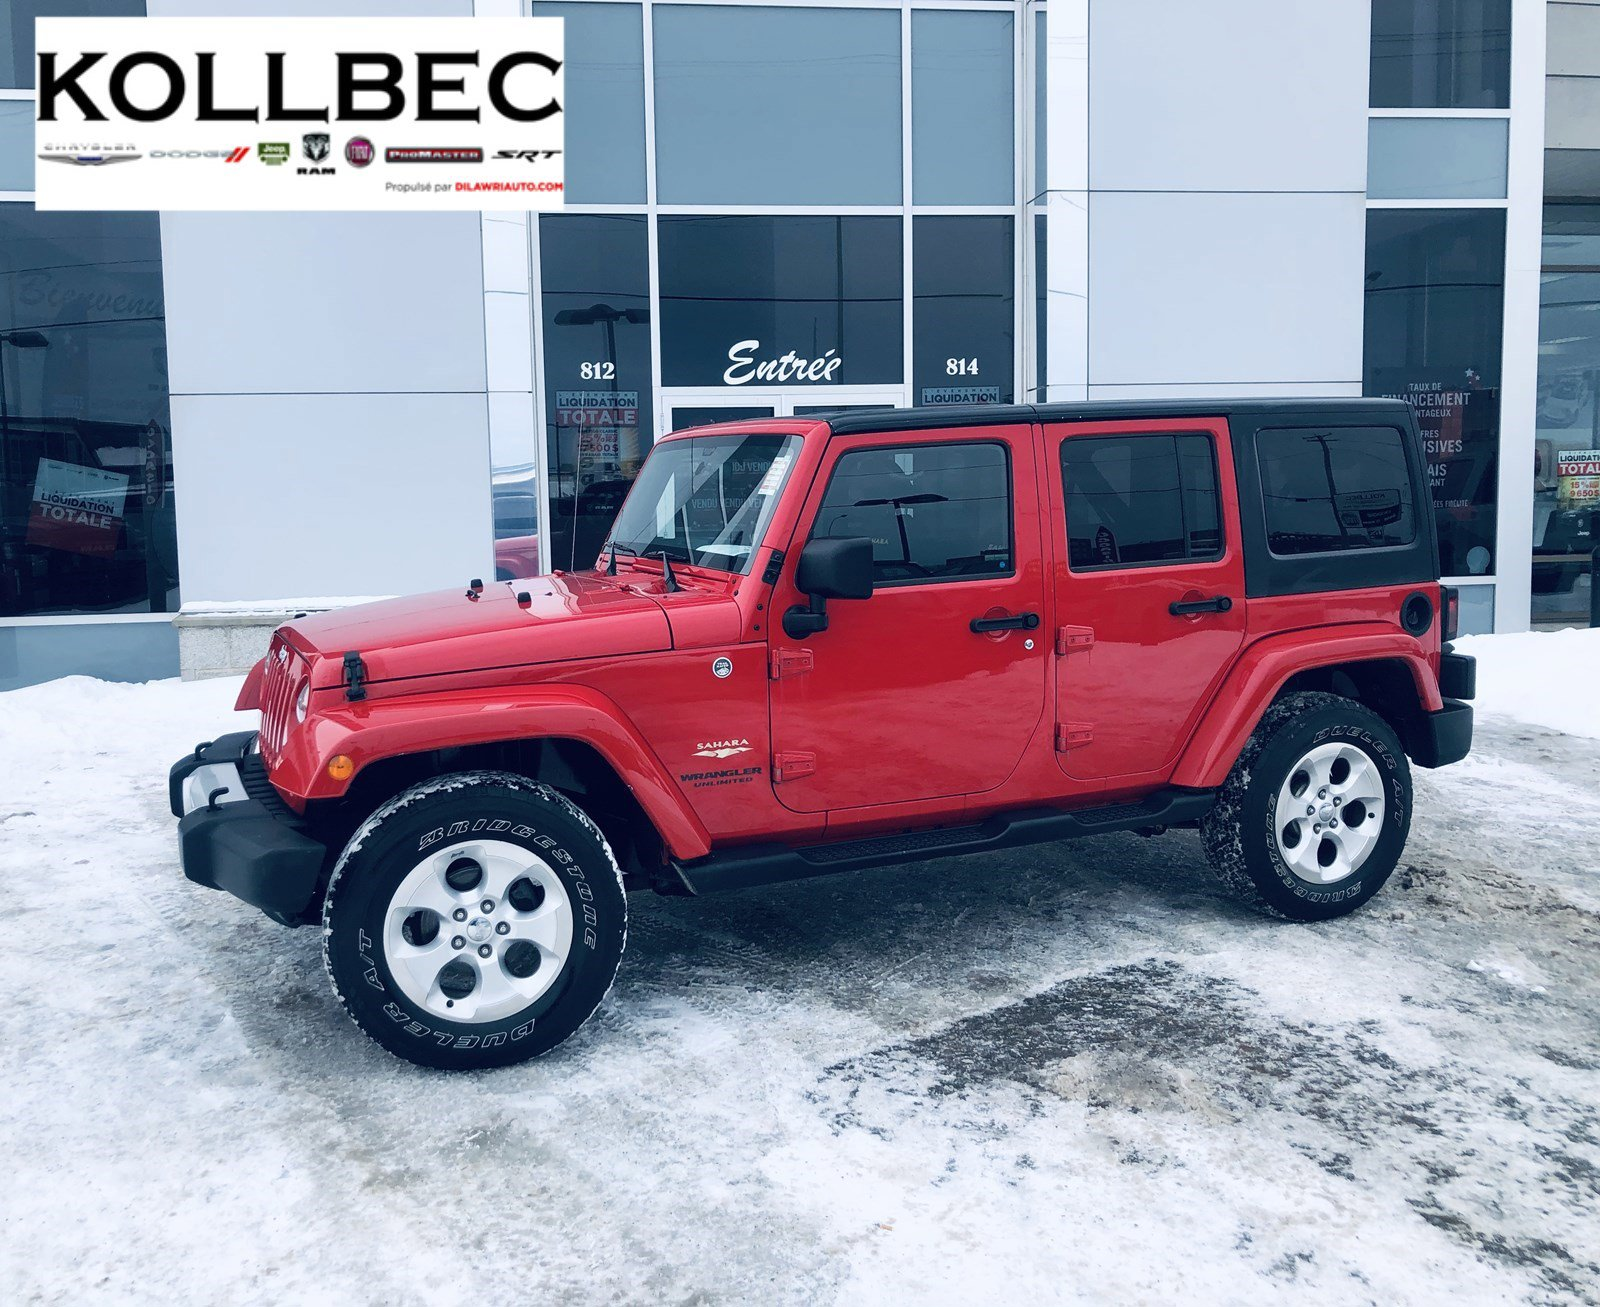 Jeep Wrangler Unlimited Convertible - 2014